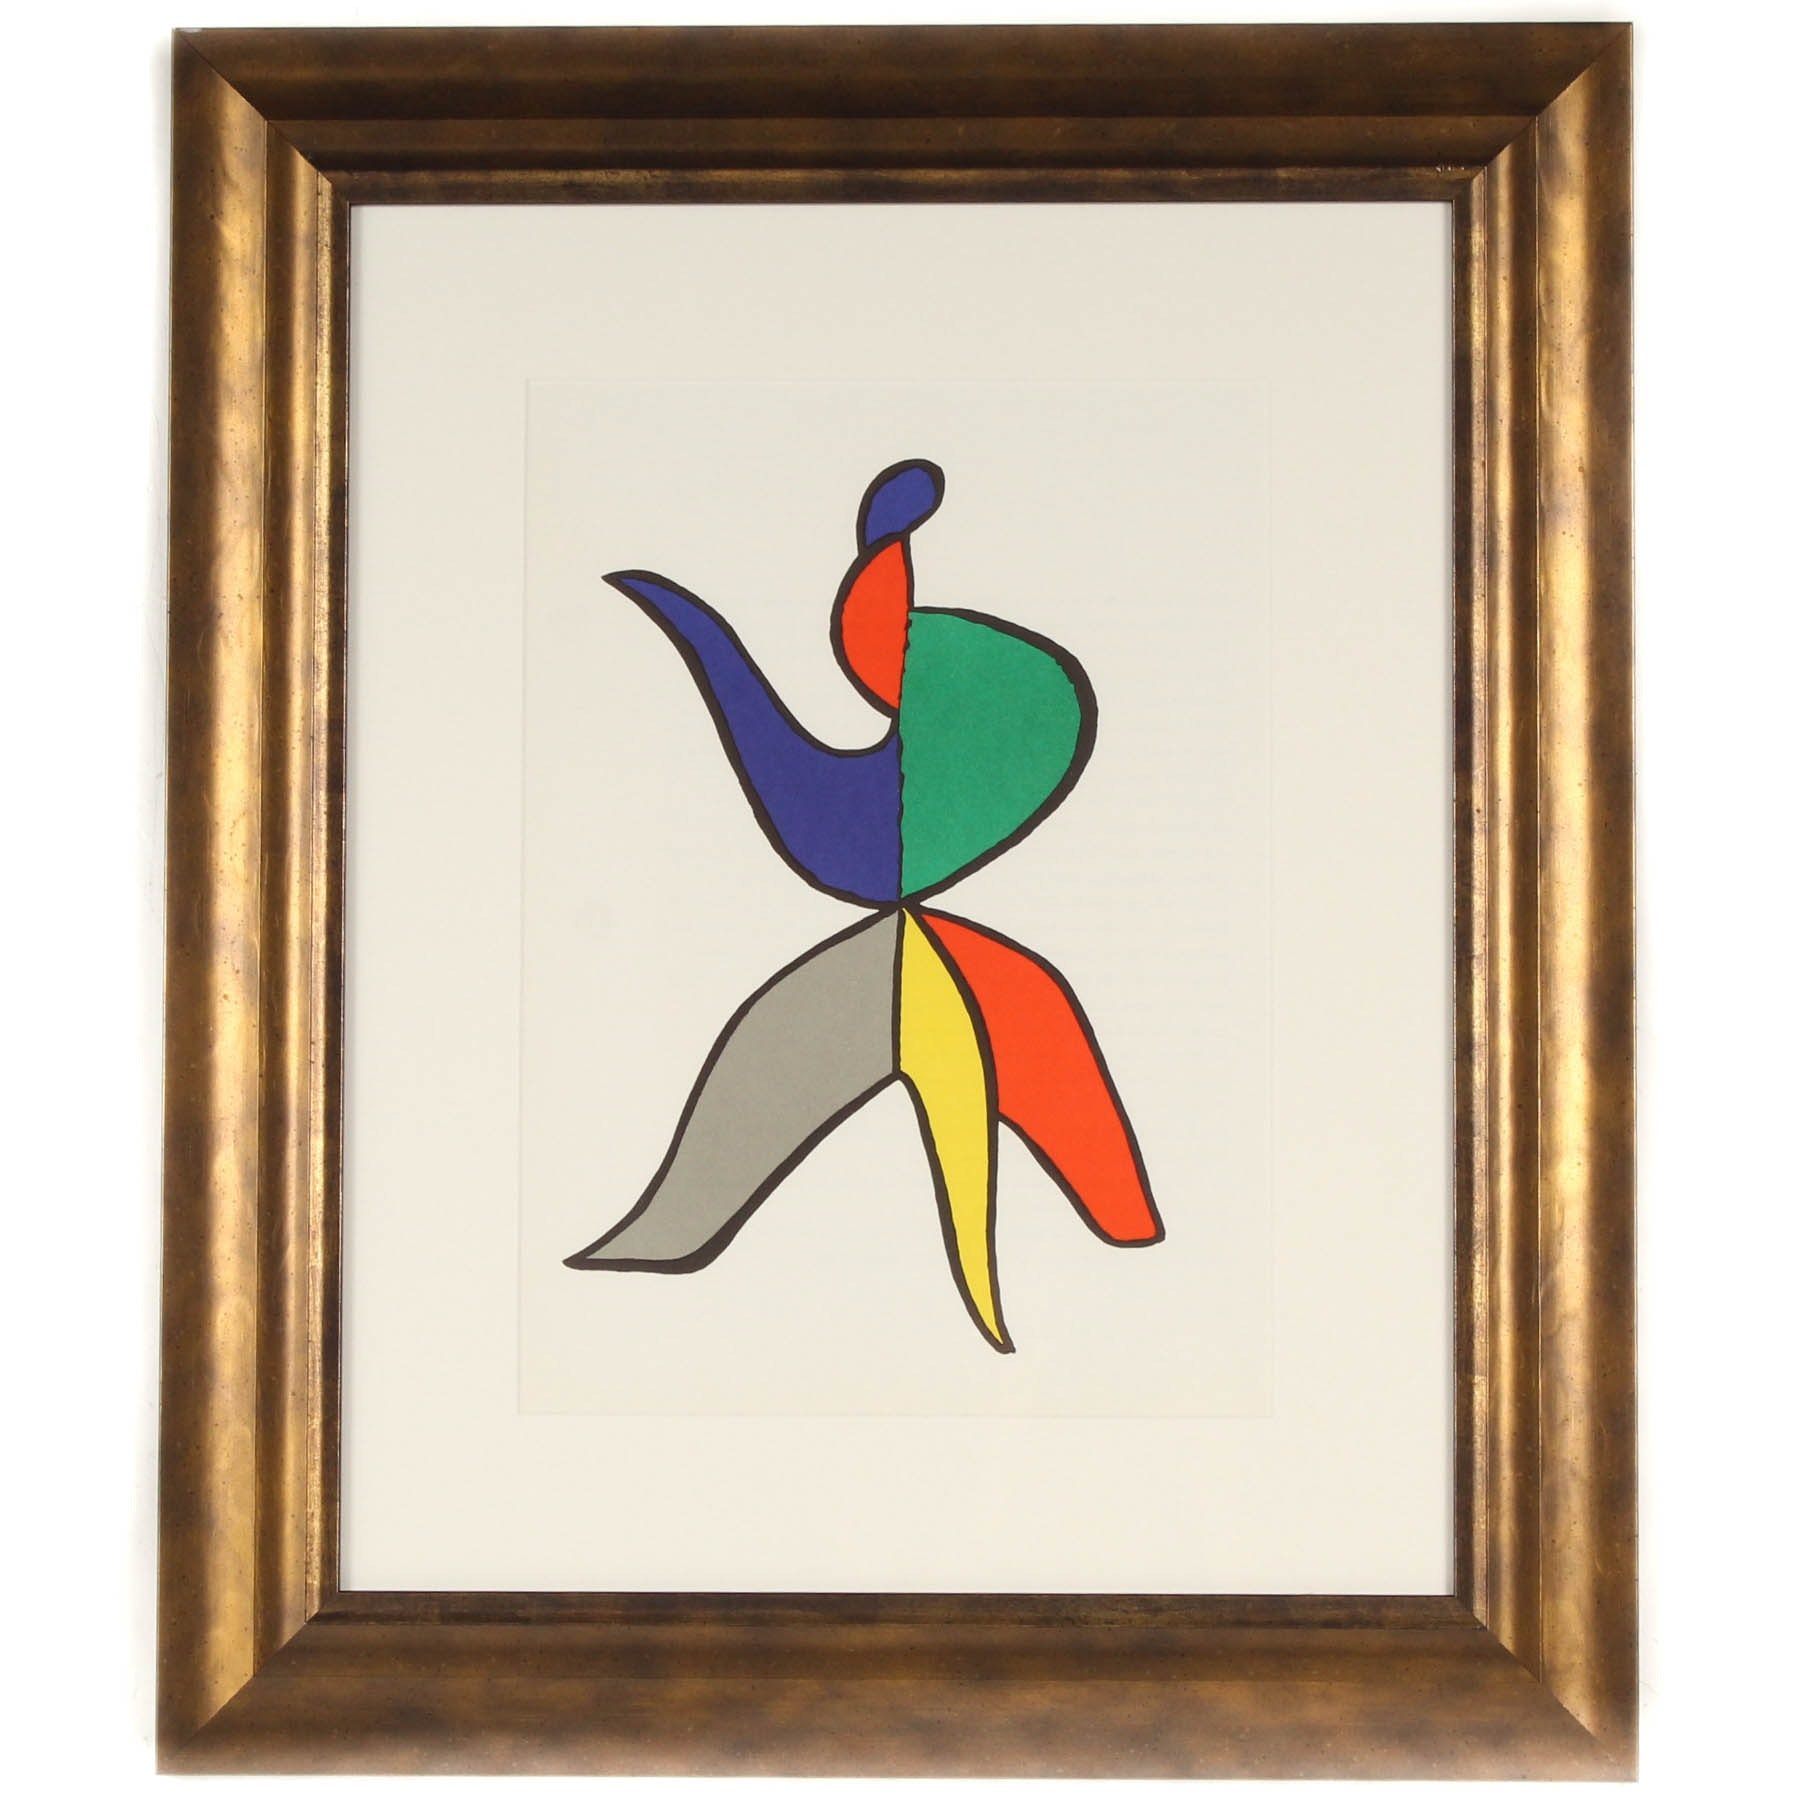 "Alexander Calder 1963 Color Lithograph for ""Derrier Le Miroir"" #141"